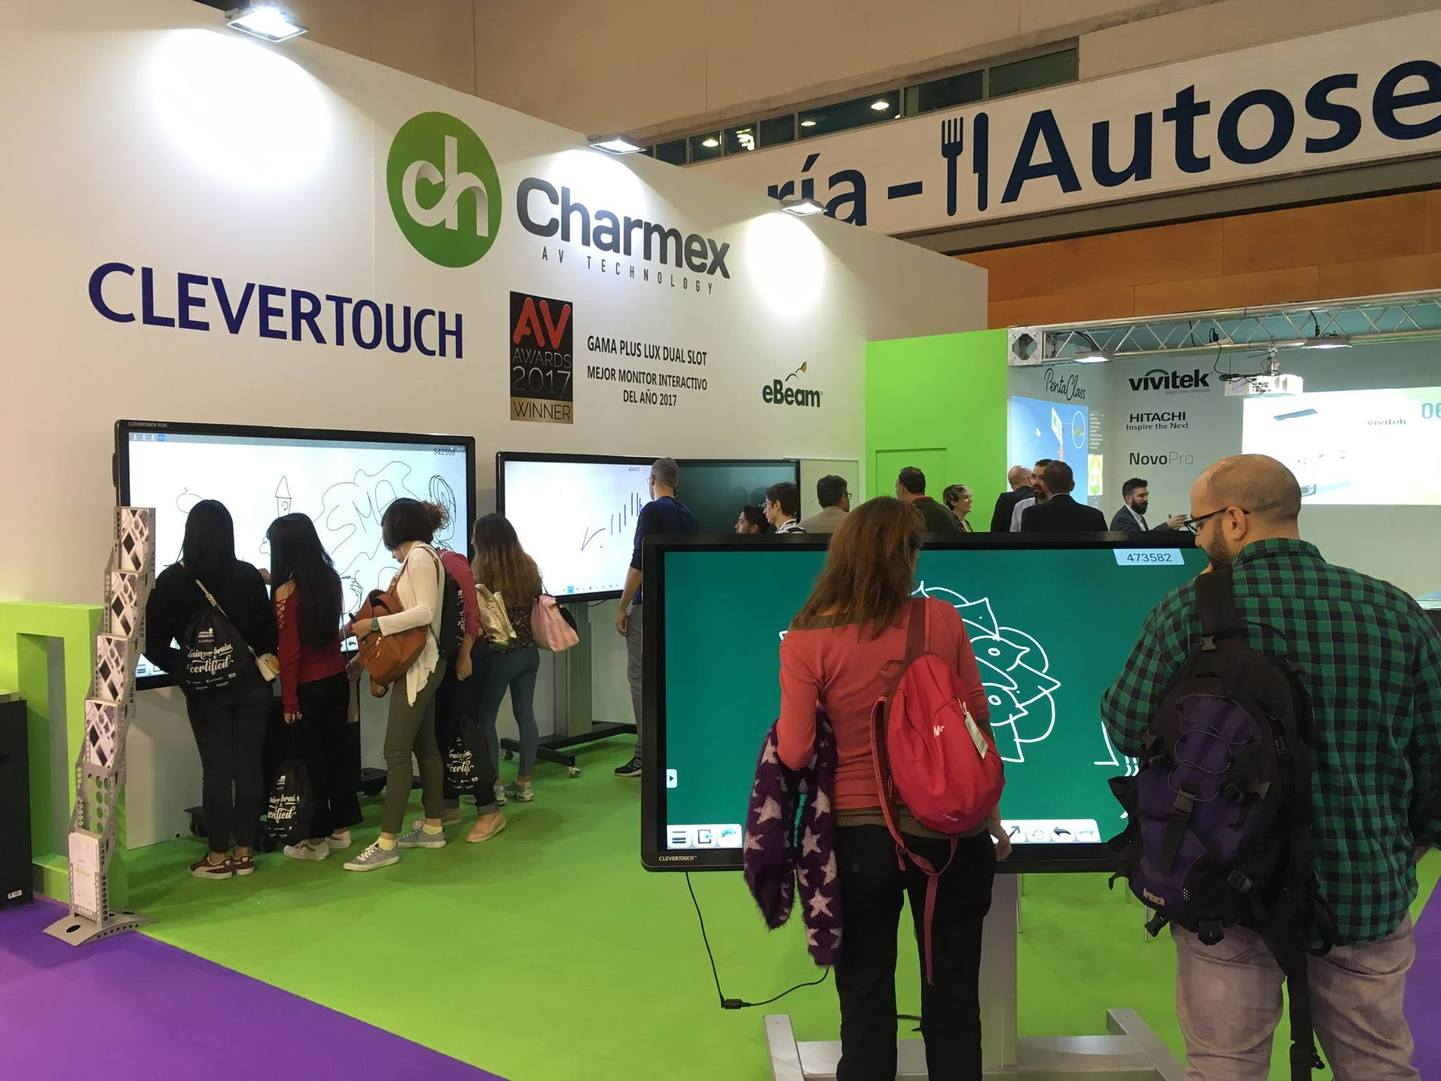 Charmex bets on interactivity for the educational environment with the Clevertouch monitors